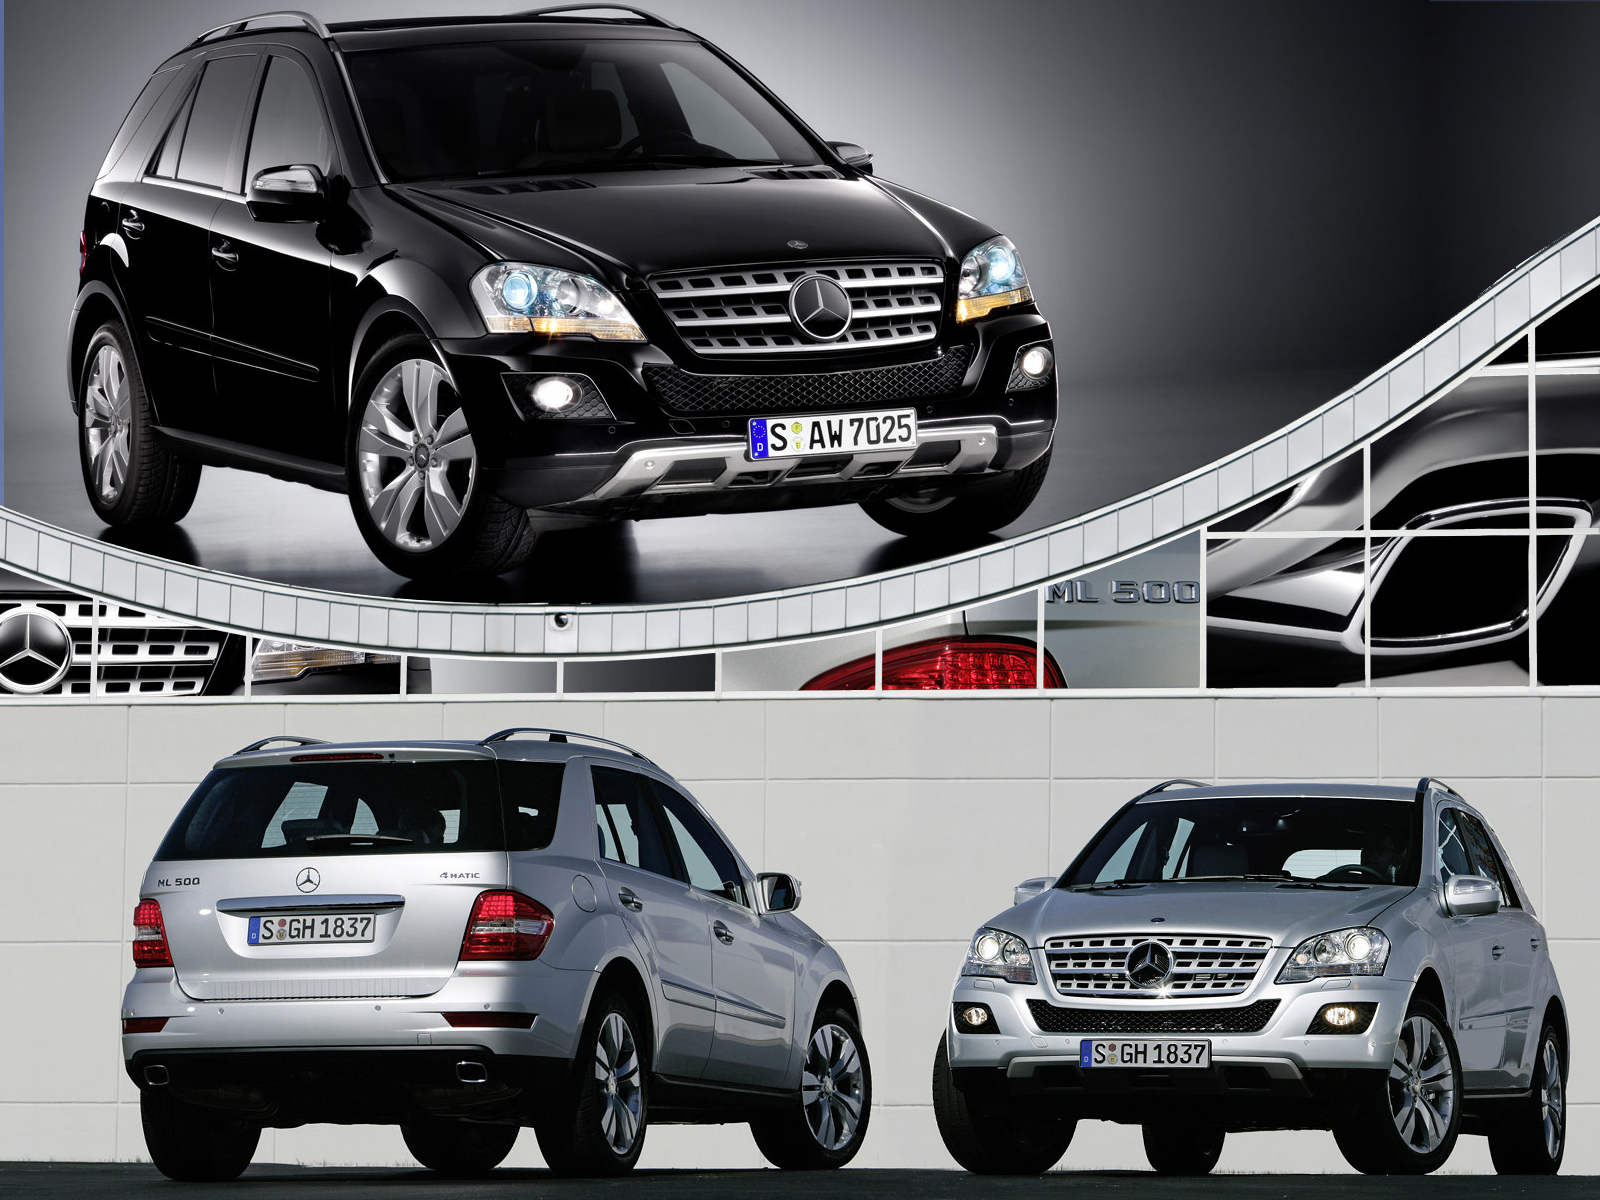 mercedes-benz ml 500 #5